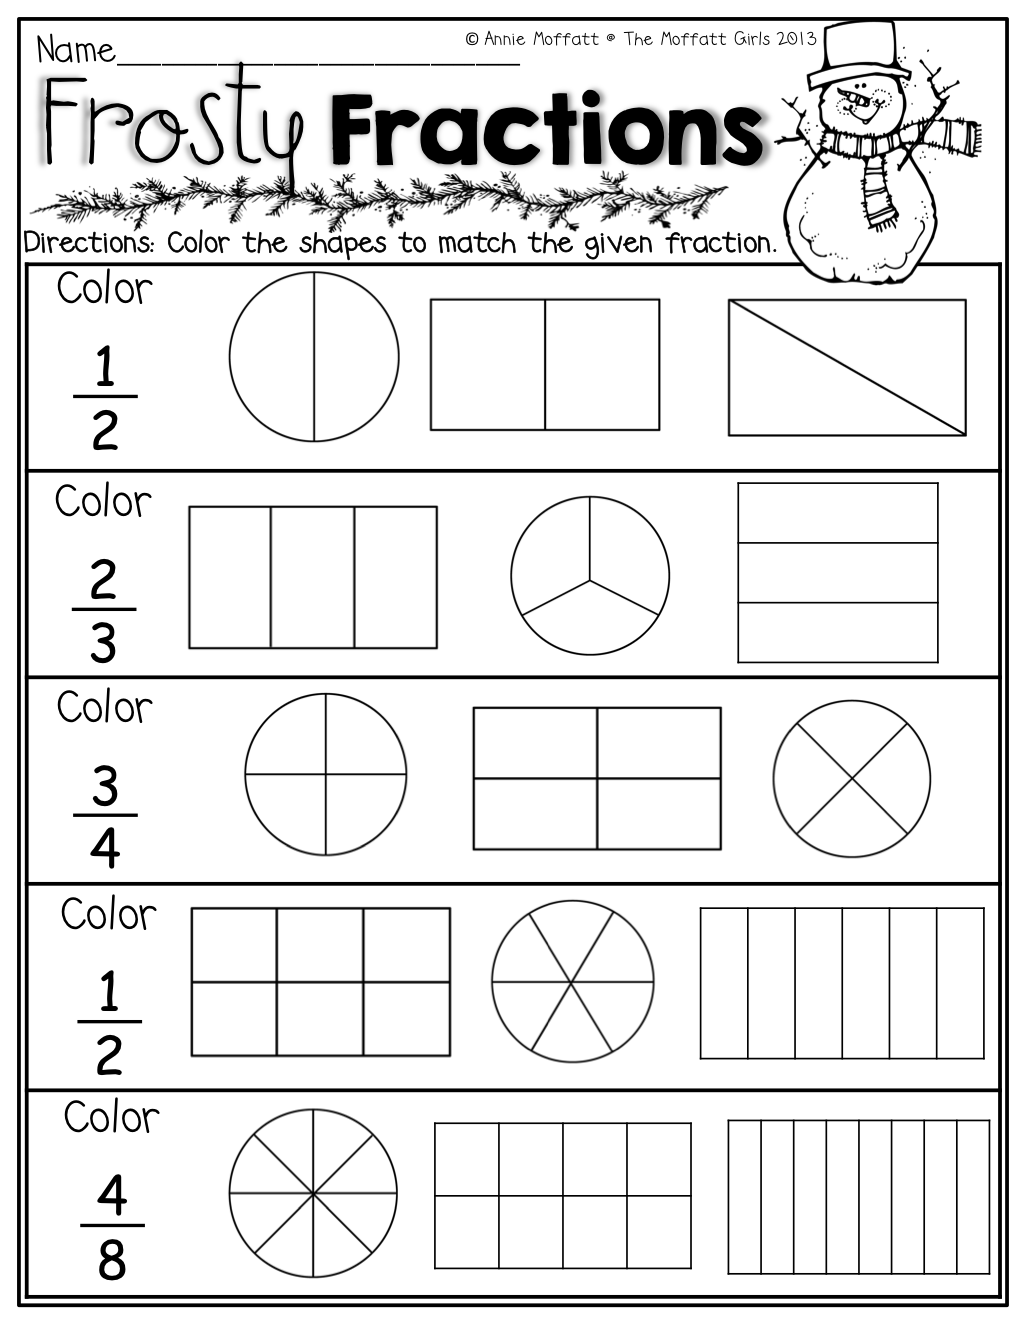 Pin By Irena Andriuskiene On Matematika In 2020 With Images 2nd Grade Math Worksheets Fractions Worksheets Math Fractions [ 1325 x 1024 Pixel ]